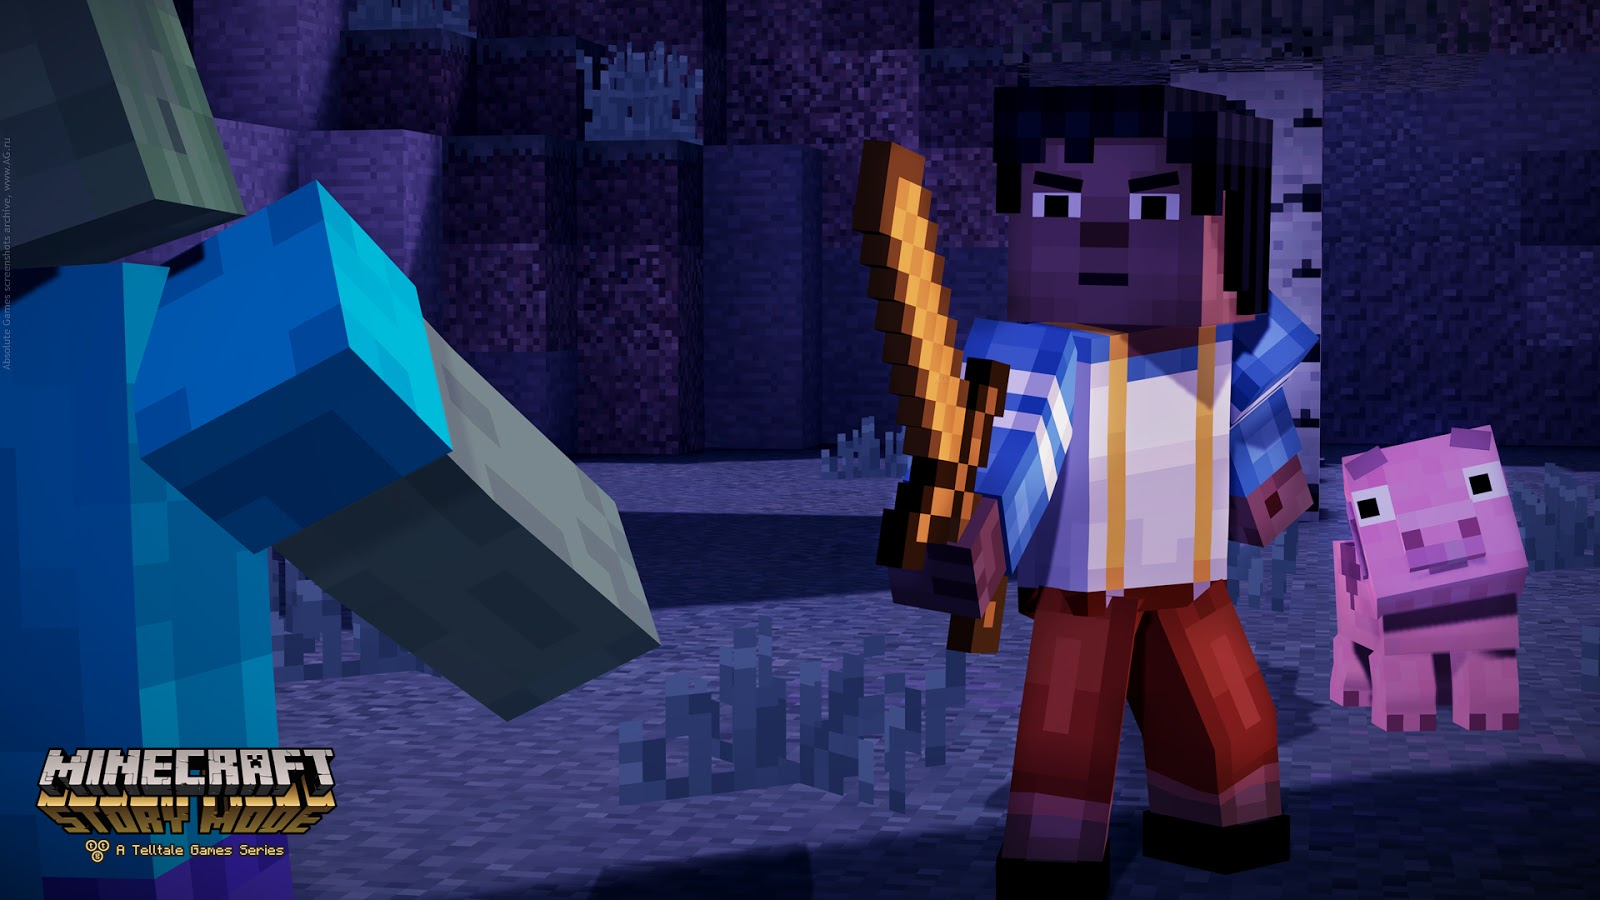 Hd wallpapers minecraft story mode hd wallpapers - Minecraft story mode wallpaper ...